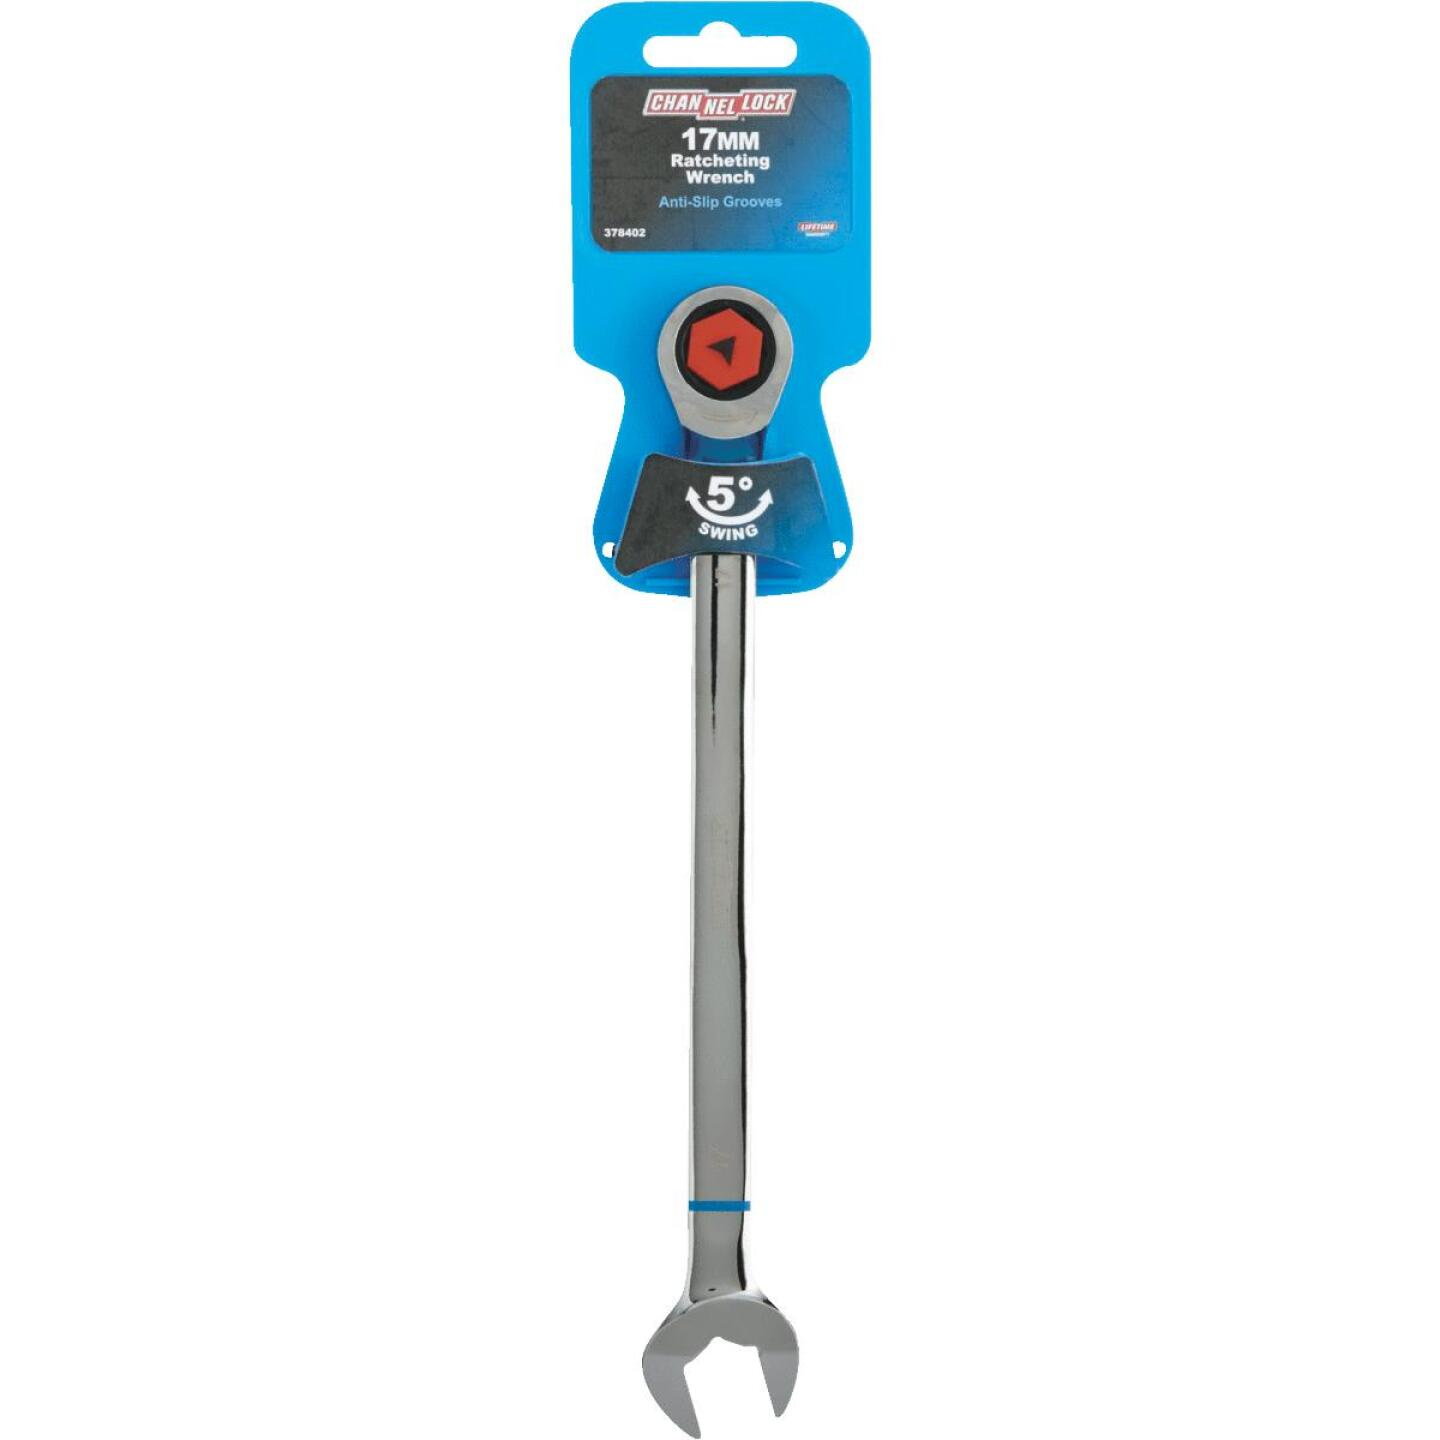 Channellock Metric 17 mm 12-Point Ratcheting Combination Wrench Image 2